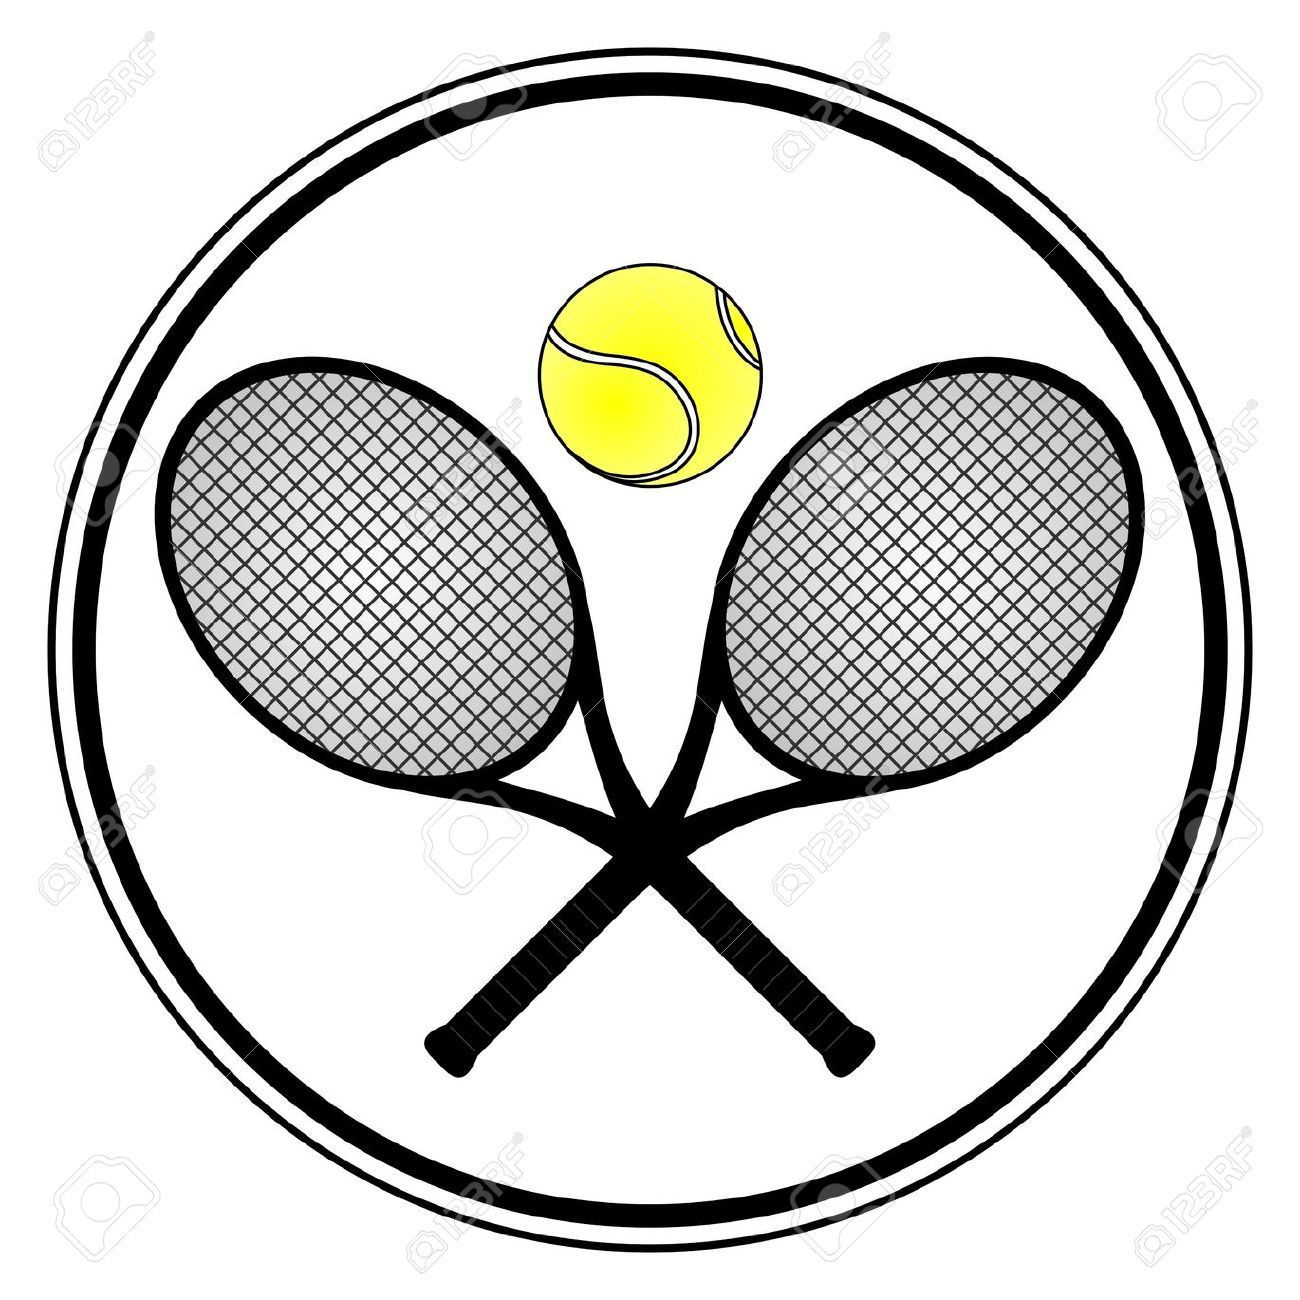 1300x1300 Up Close Tennis Racket Drawings